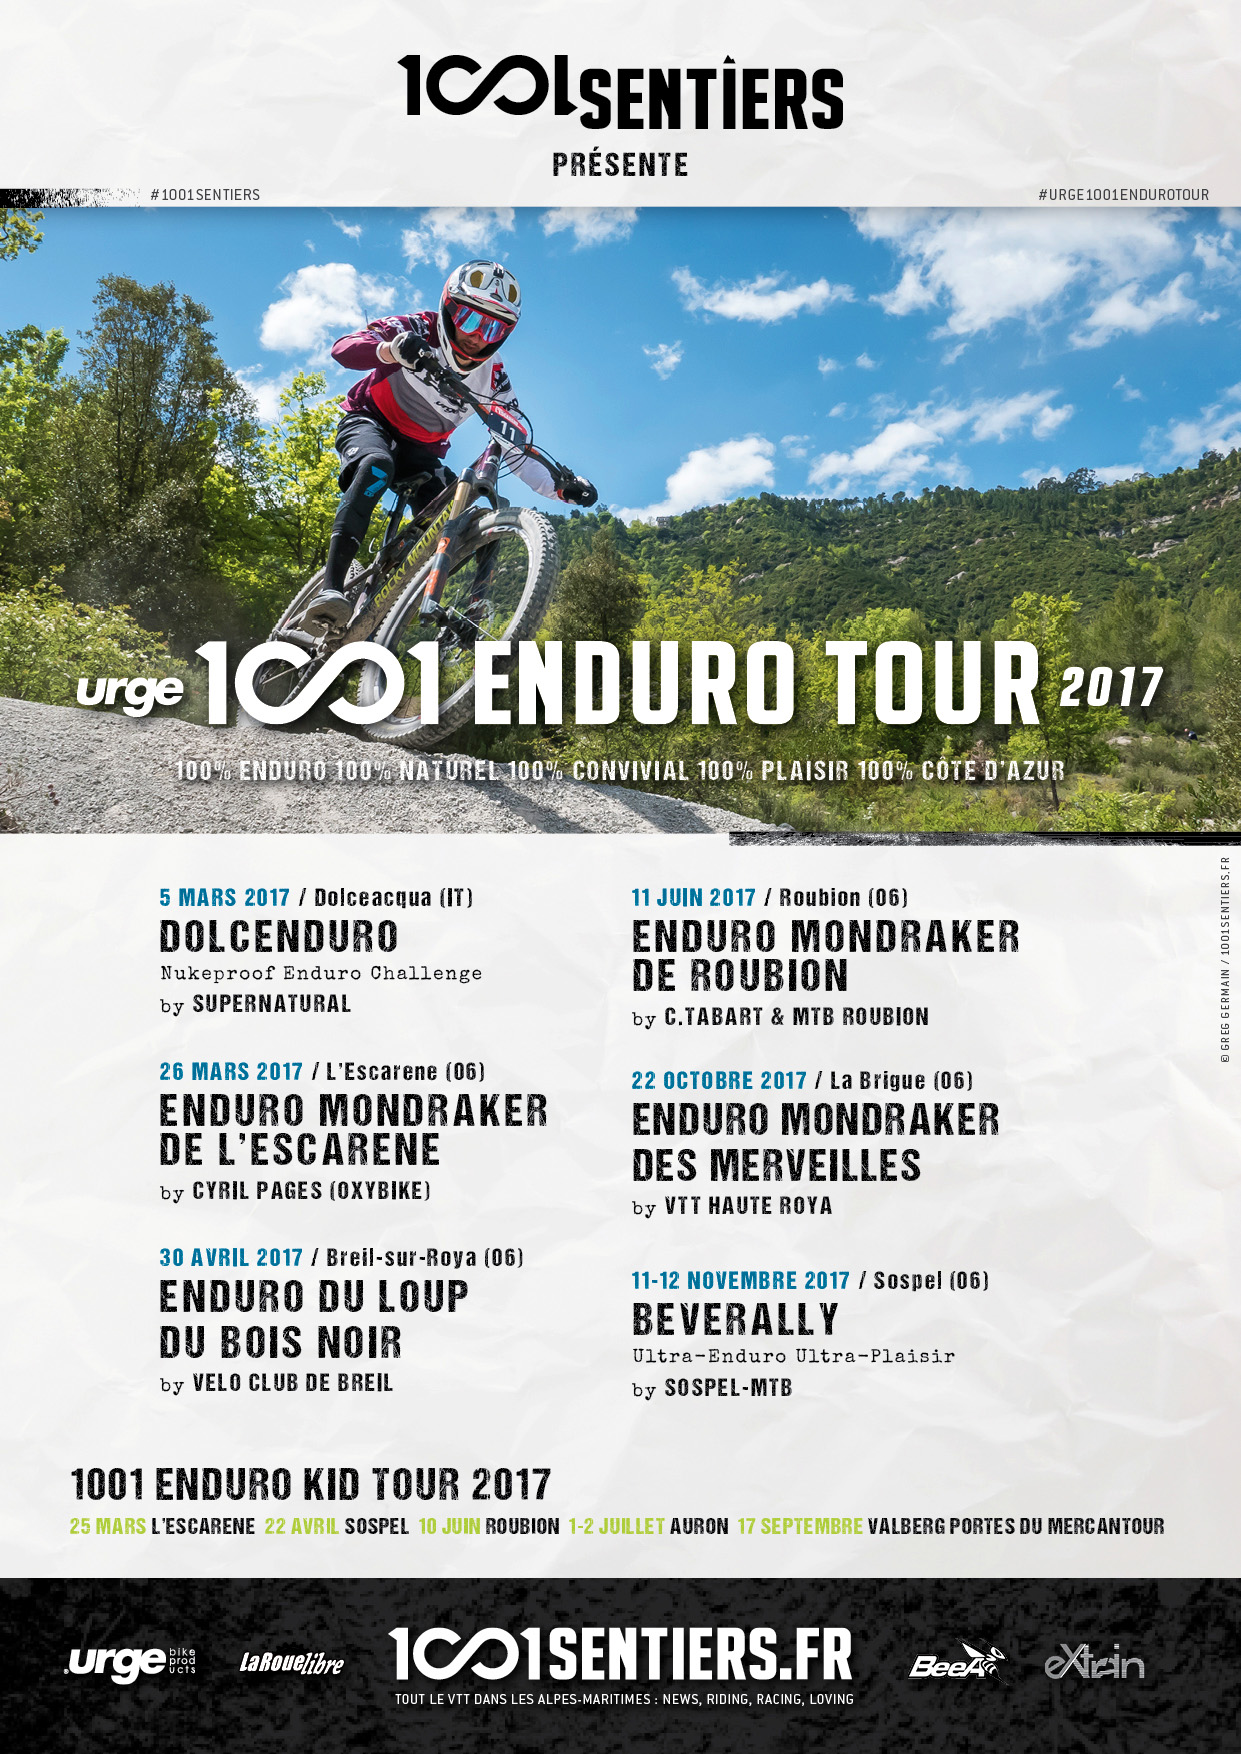 affiche-urge-1001-enduro-tour-2017-web-1-1